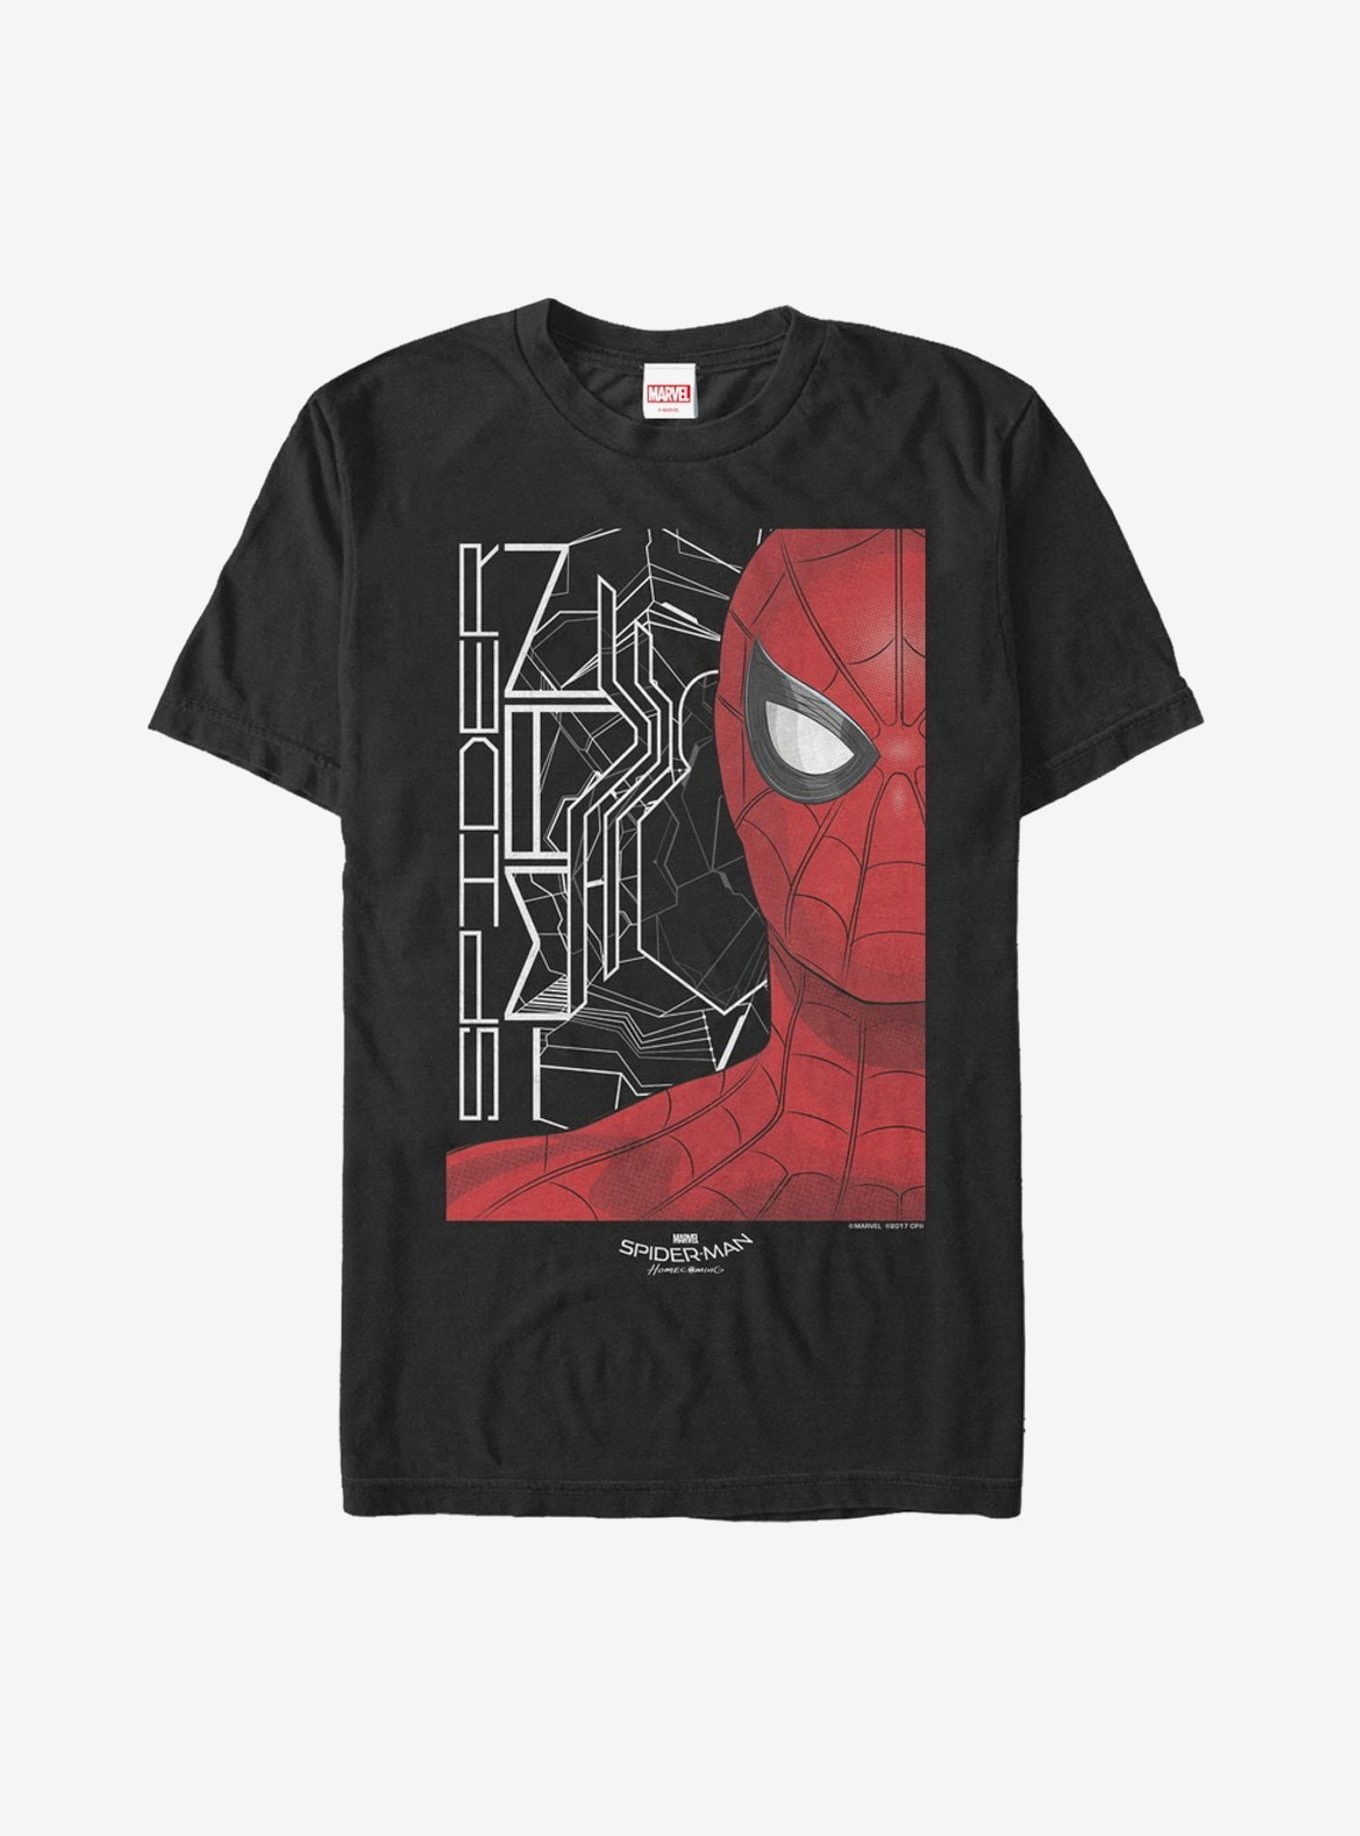 Marvel Spider Man Homecoming Face T Shirt Spiderman Homecoming T Shirt Spiderman Marvel Spiderman [ 1836 x 1360 Pixel ]